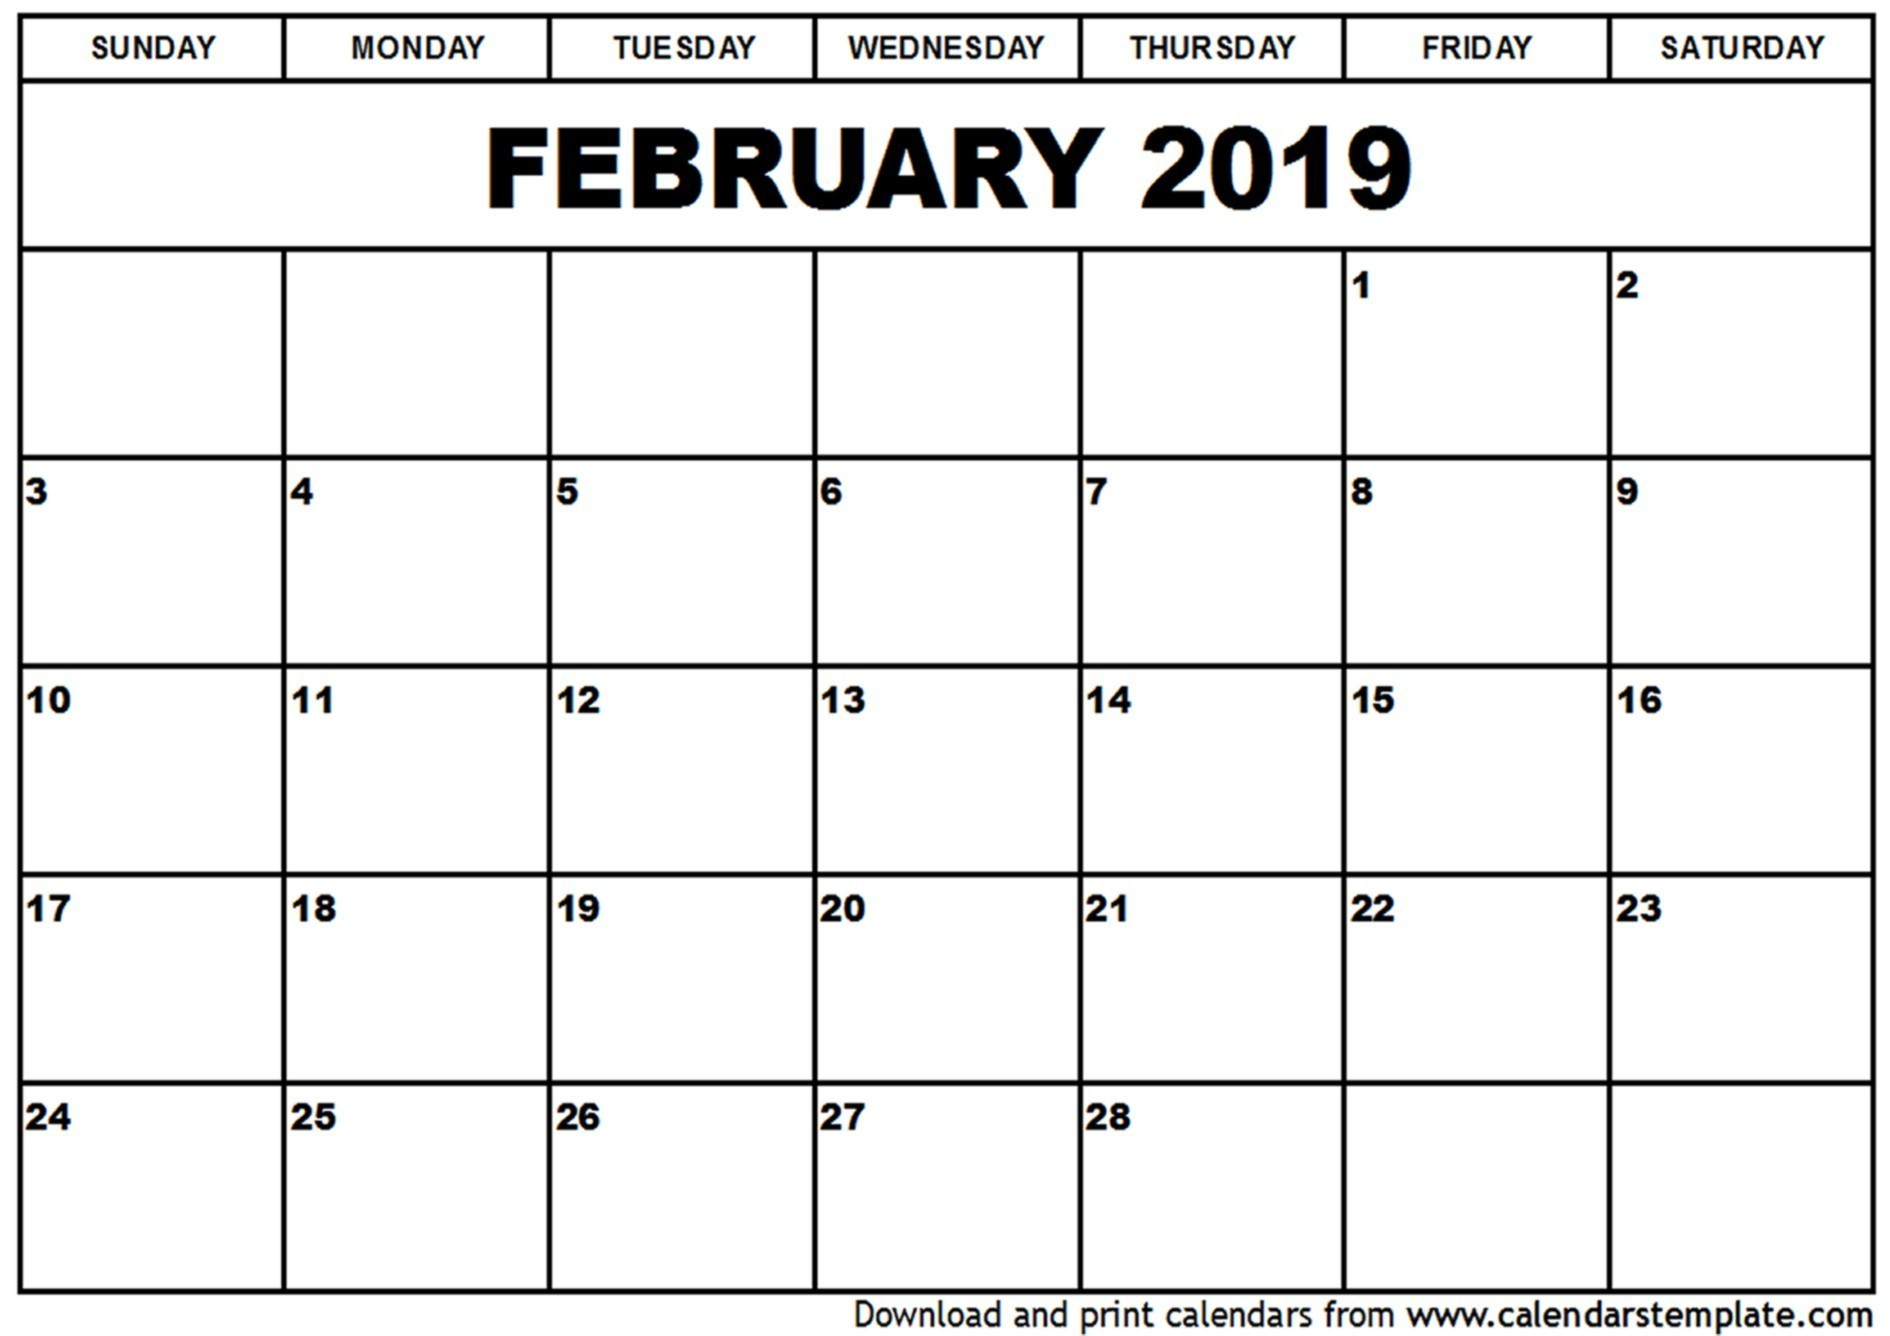 Jewish Calendar Year 2019 With Holidays Free Printable In